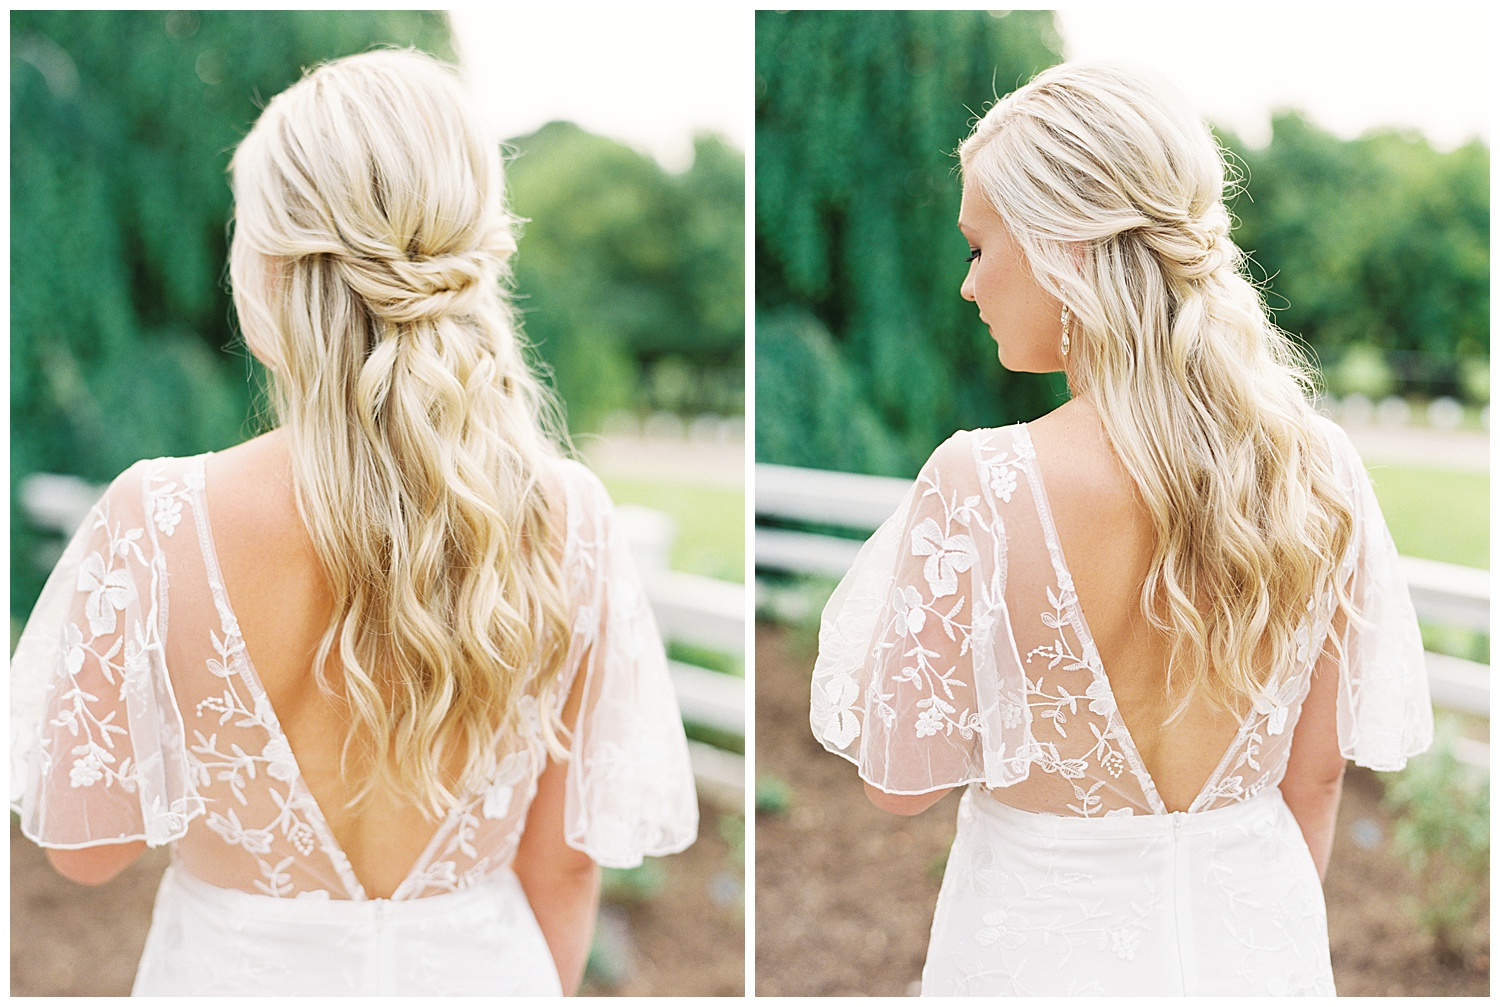 Of course, as always, Maddie Wofford of  Hair by Maddie Woff , absolutely blew me away with this light, yet elegant half up, half down look! It framed Morgan's face just perfectly, and really encompassed the entire feel of the engagement session we were going for!